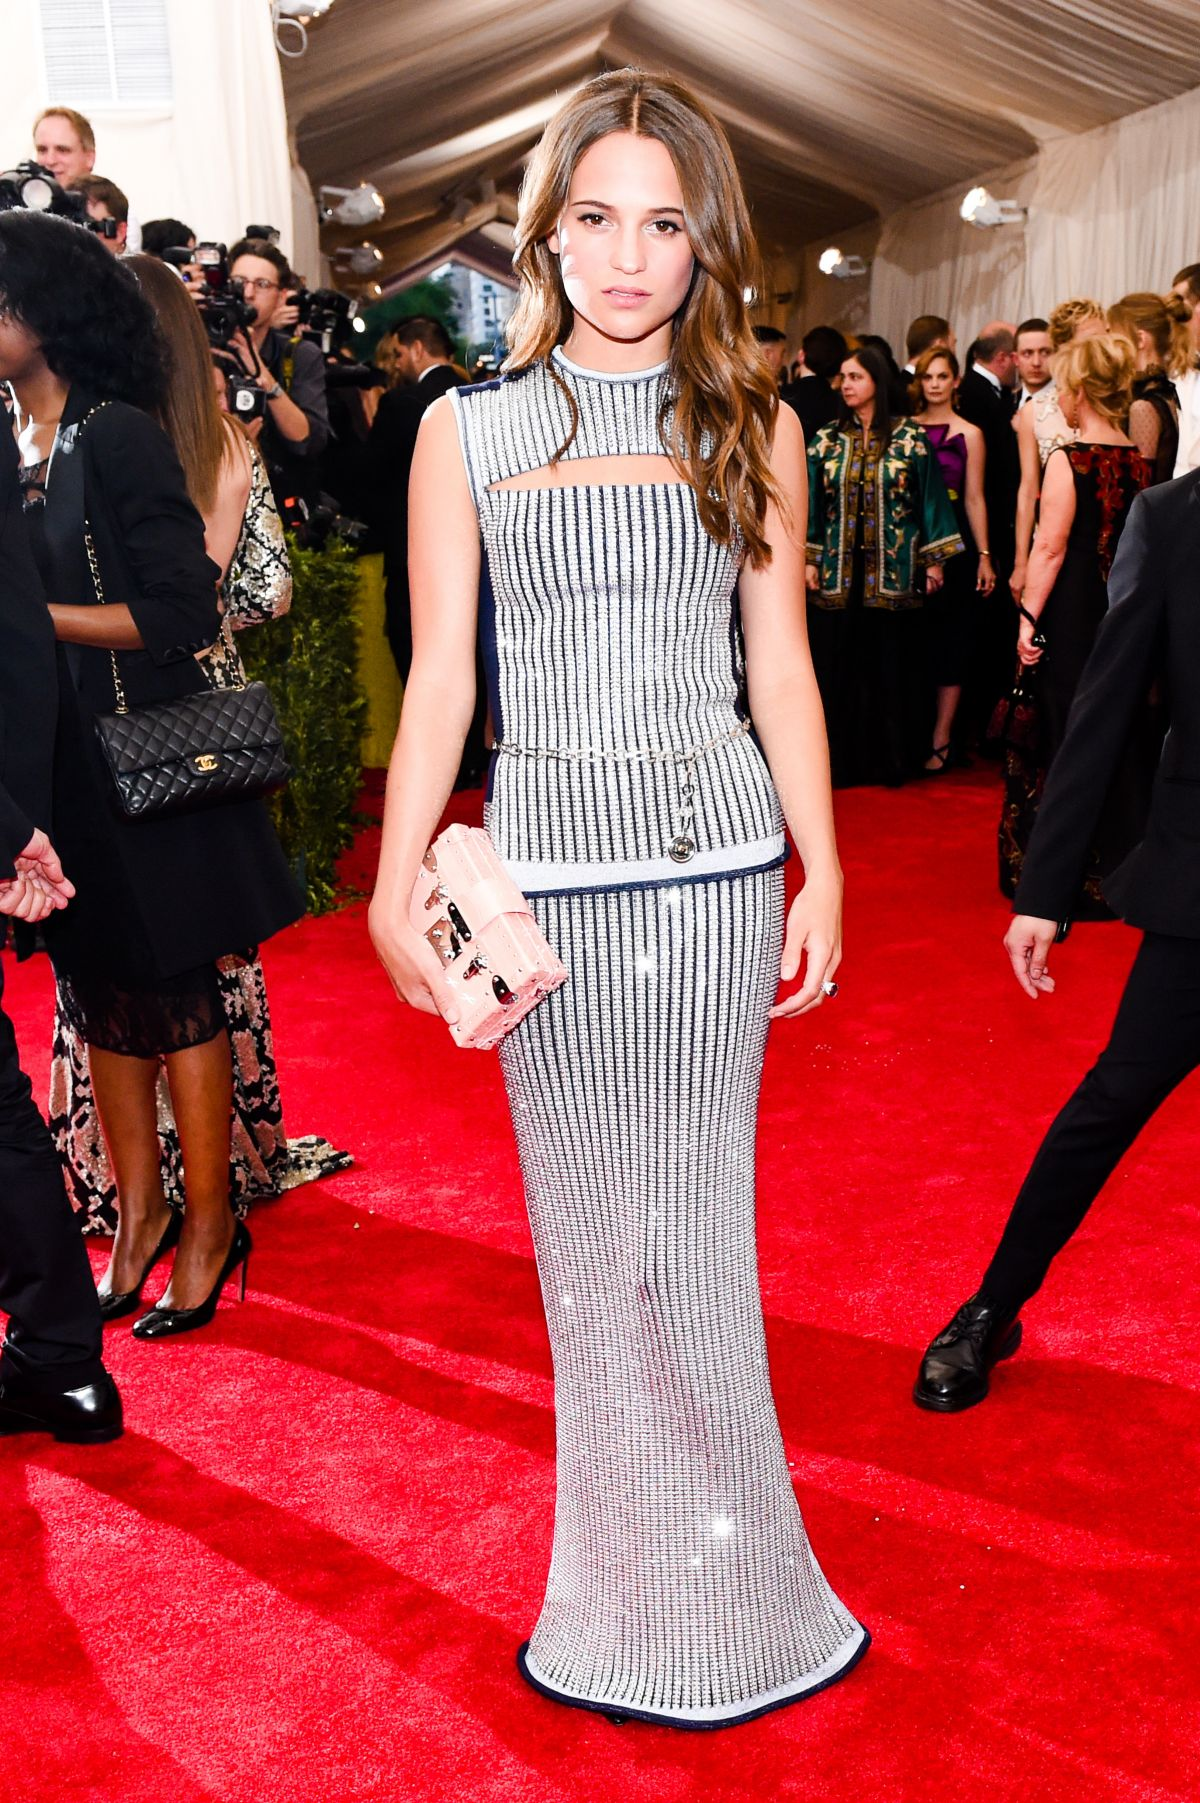 ALICIA VIKANDER at MET Gala 2015 in New York